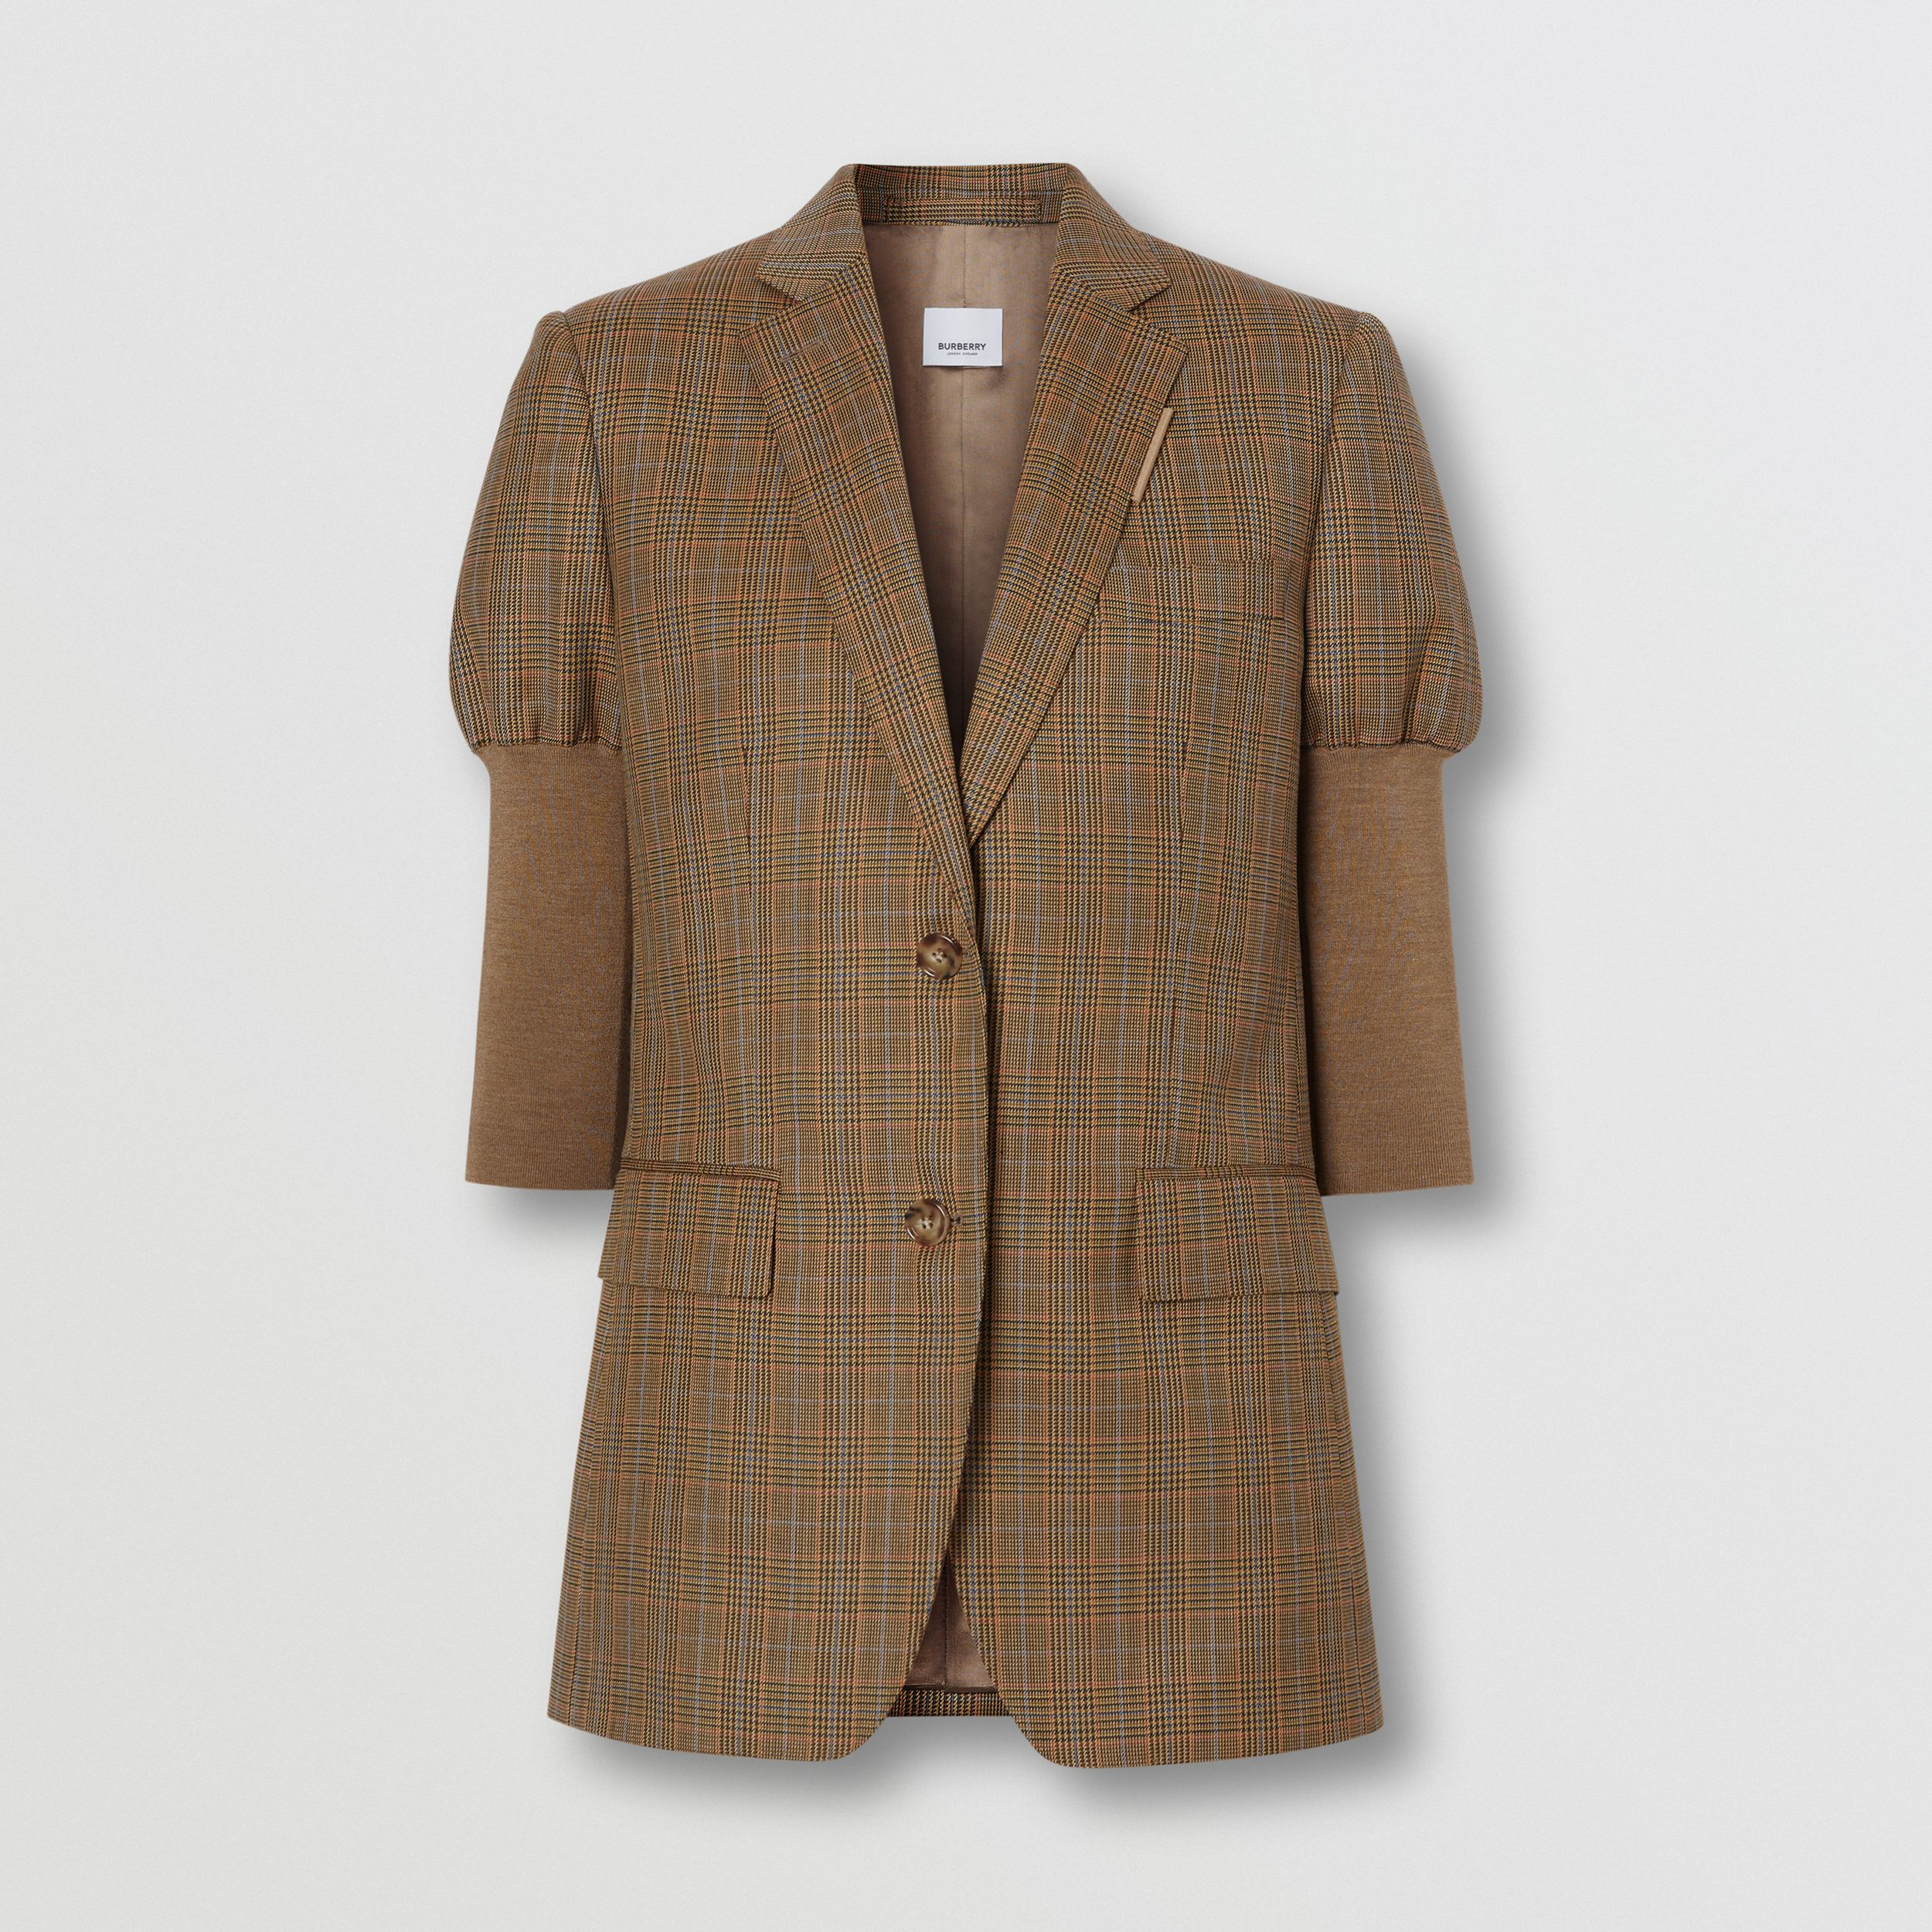 Knitted Sleeve Houndstooth Check Wool Tailored Jacket in Fawn - Women | Burberry - 4